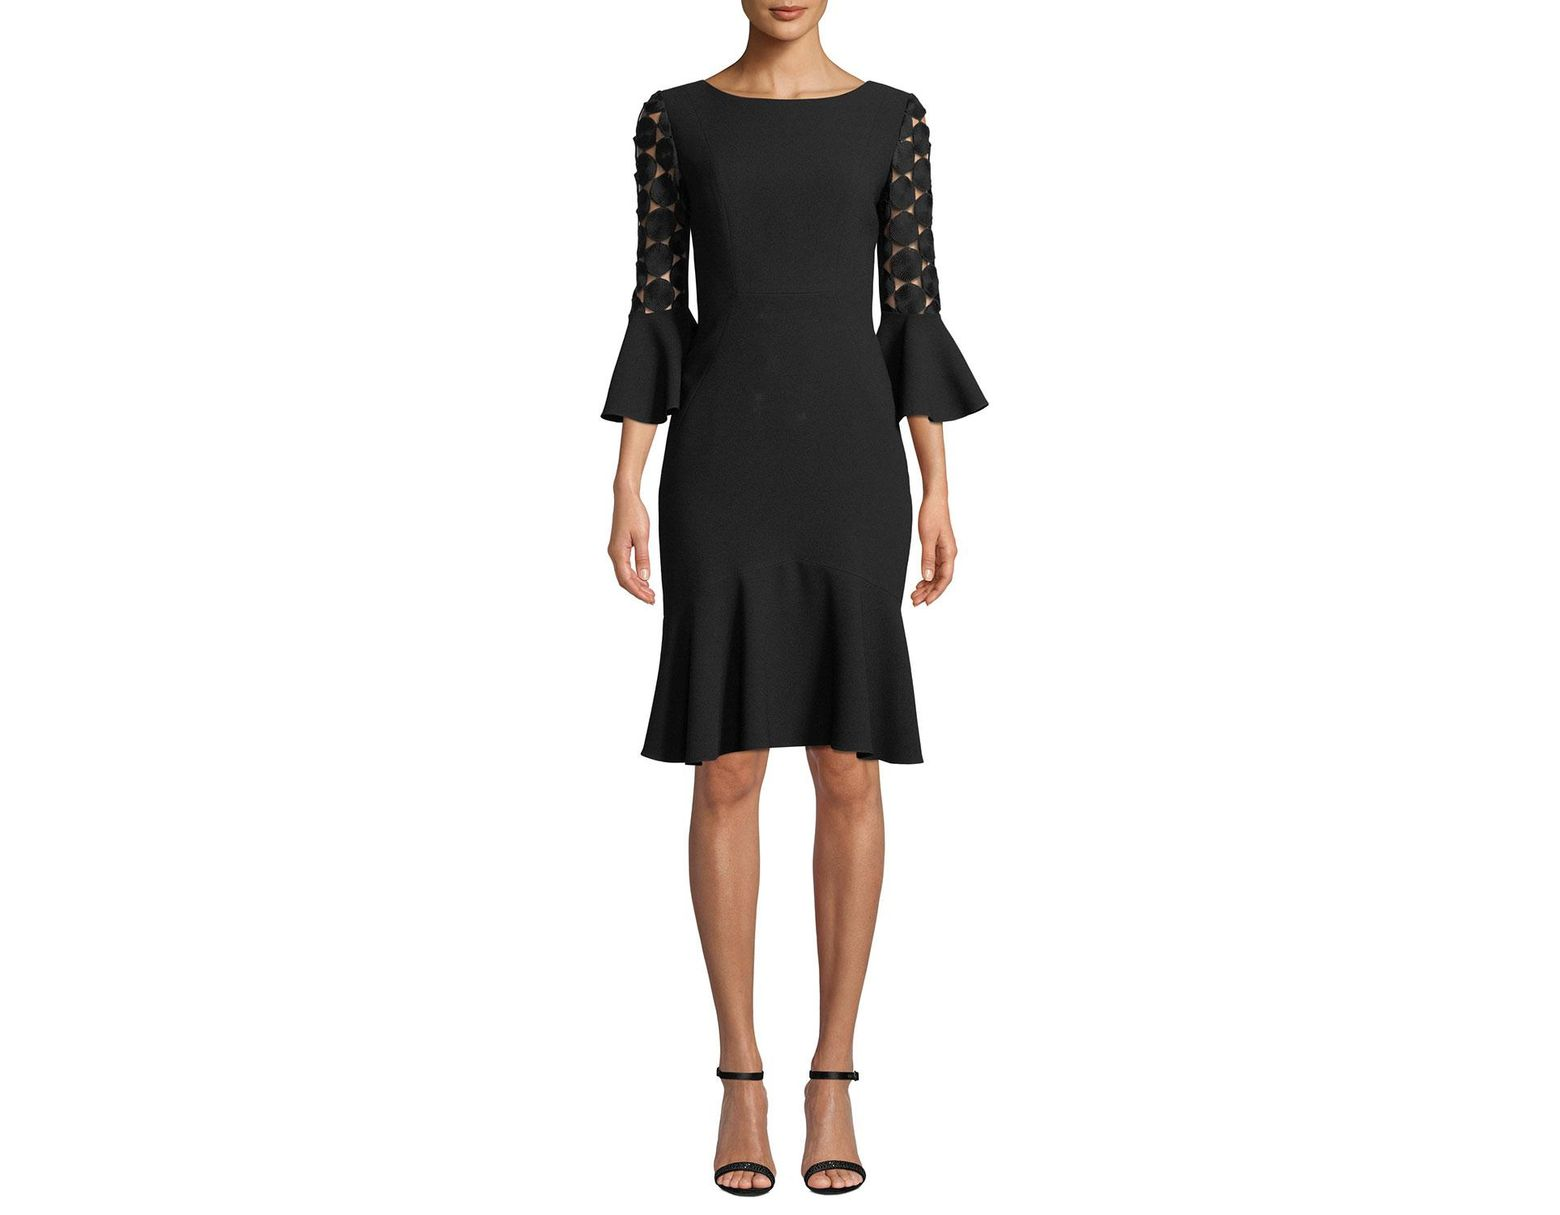 914914fbc541 Elie Tahari Bri Crochet-sleeve Dress in Black - Lyst